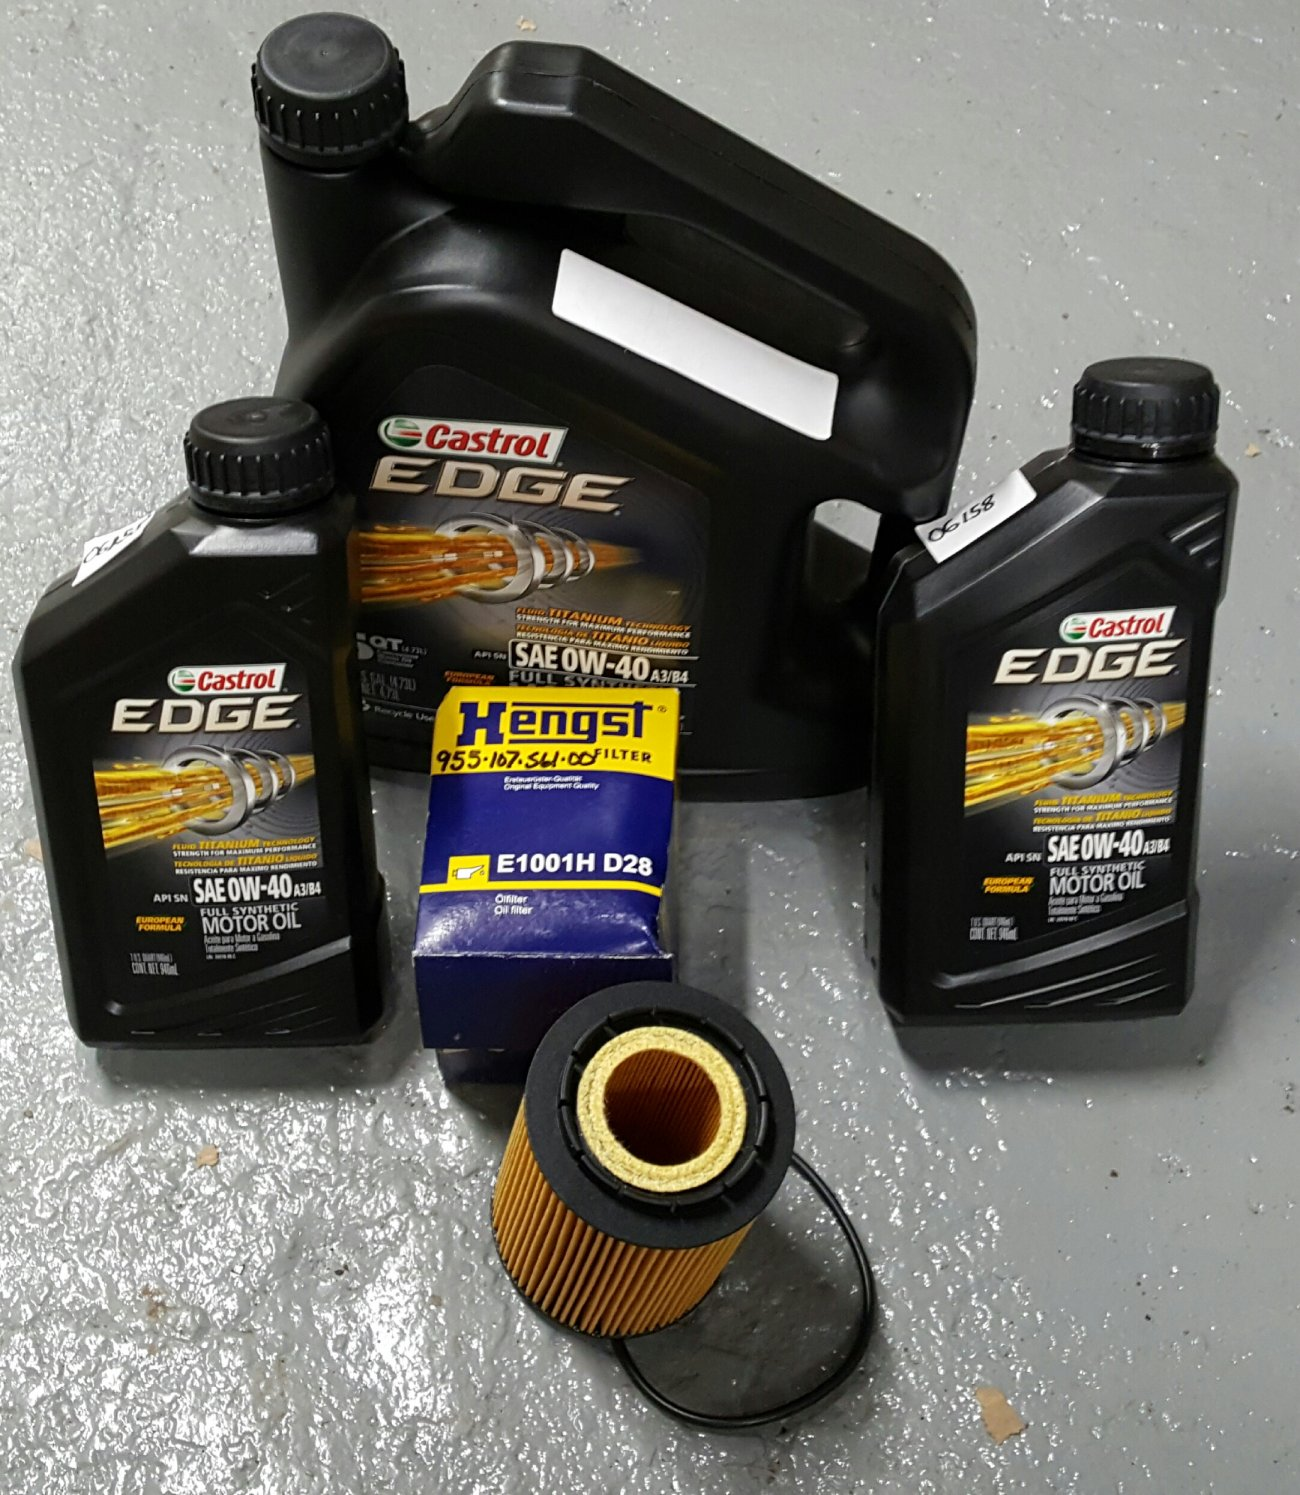 Find Every Shop In The World Selling Castrol 6249 Syntec Edge Spot Mobil 1 0w 40 Full Tri Synthetic Api Sn Ultimate All Round Protection 1l 0w40 Oilchng8